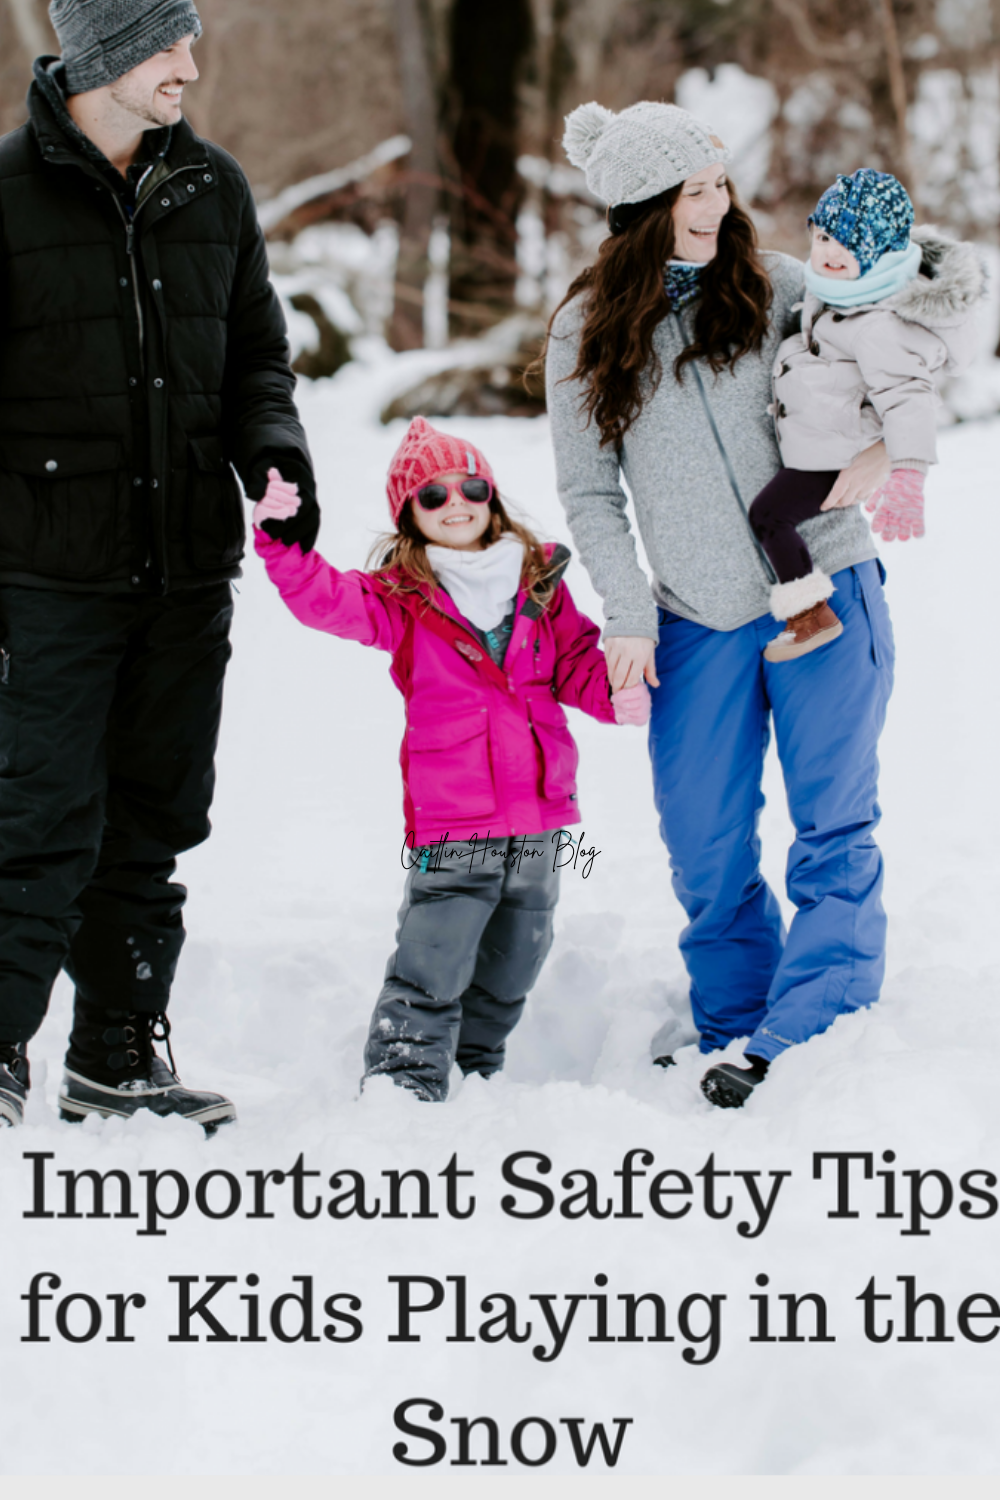 Rules for Playing Safely in the Snow